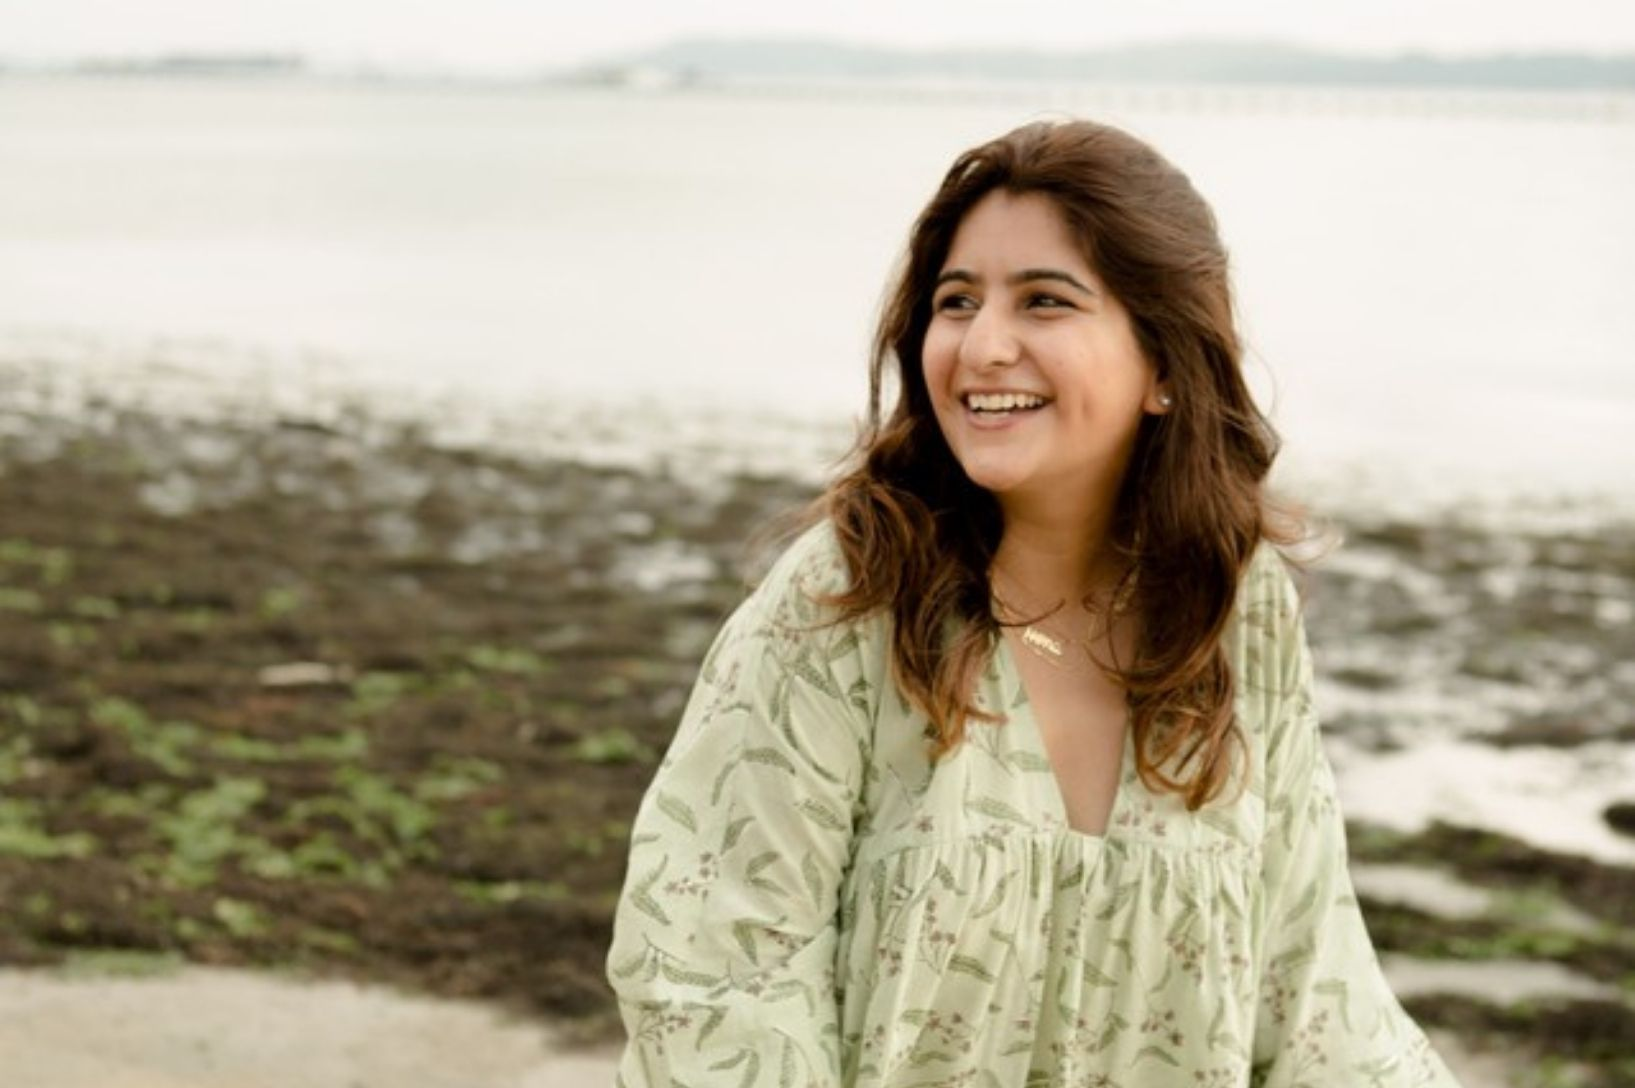 Mahima Gujral and her ethical fashion label, SUI.